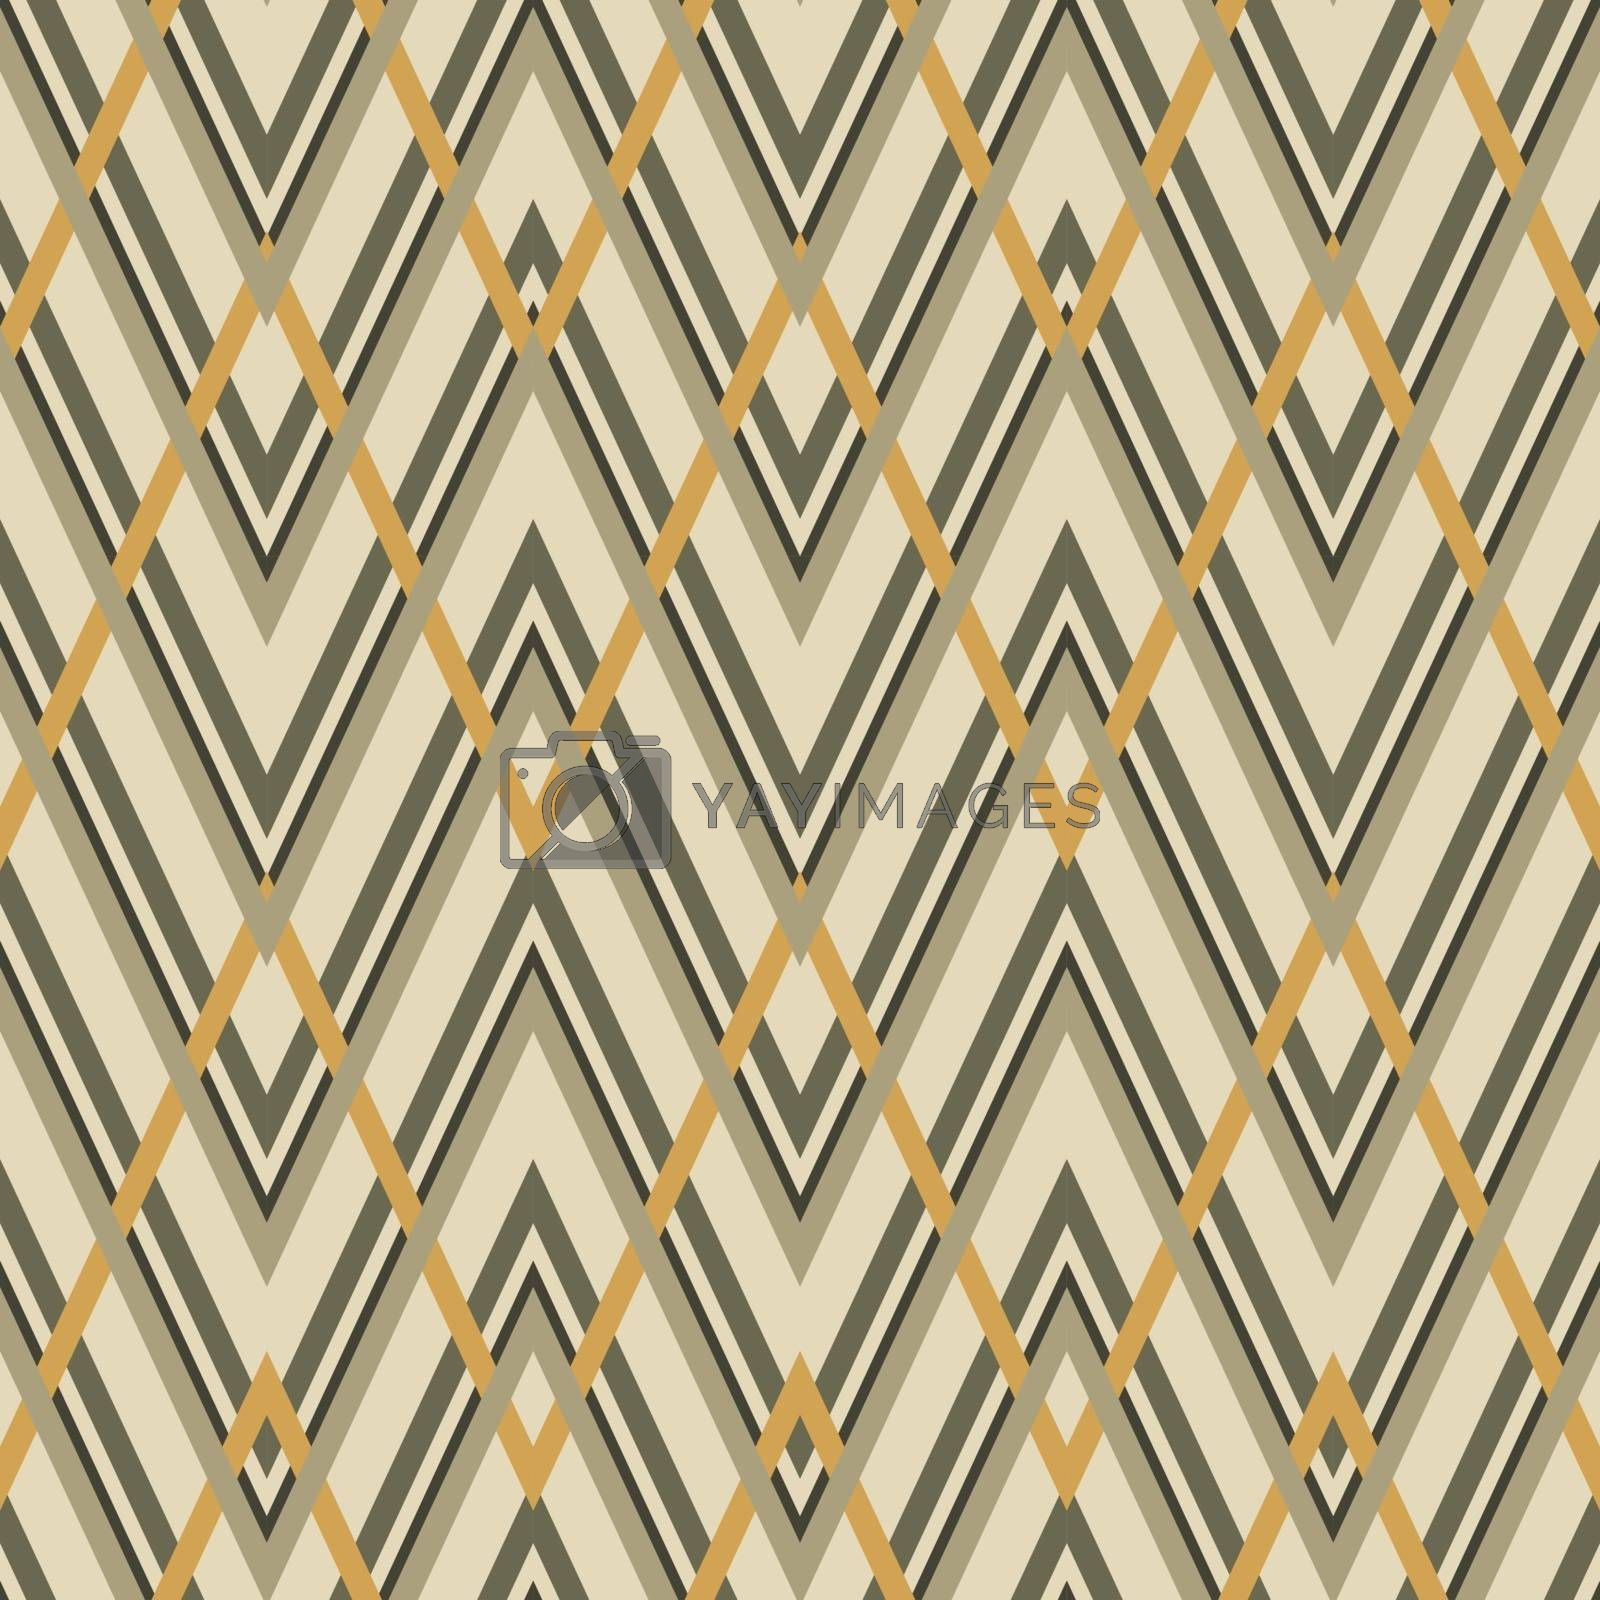 Geometric zigzag seamless pattern. Vector illustration. Abstract ethnic ornament